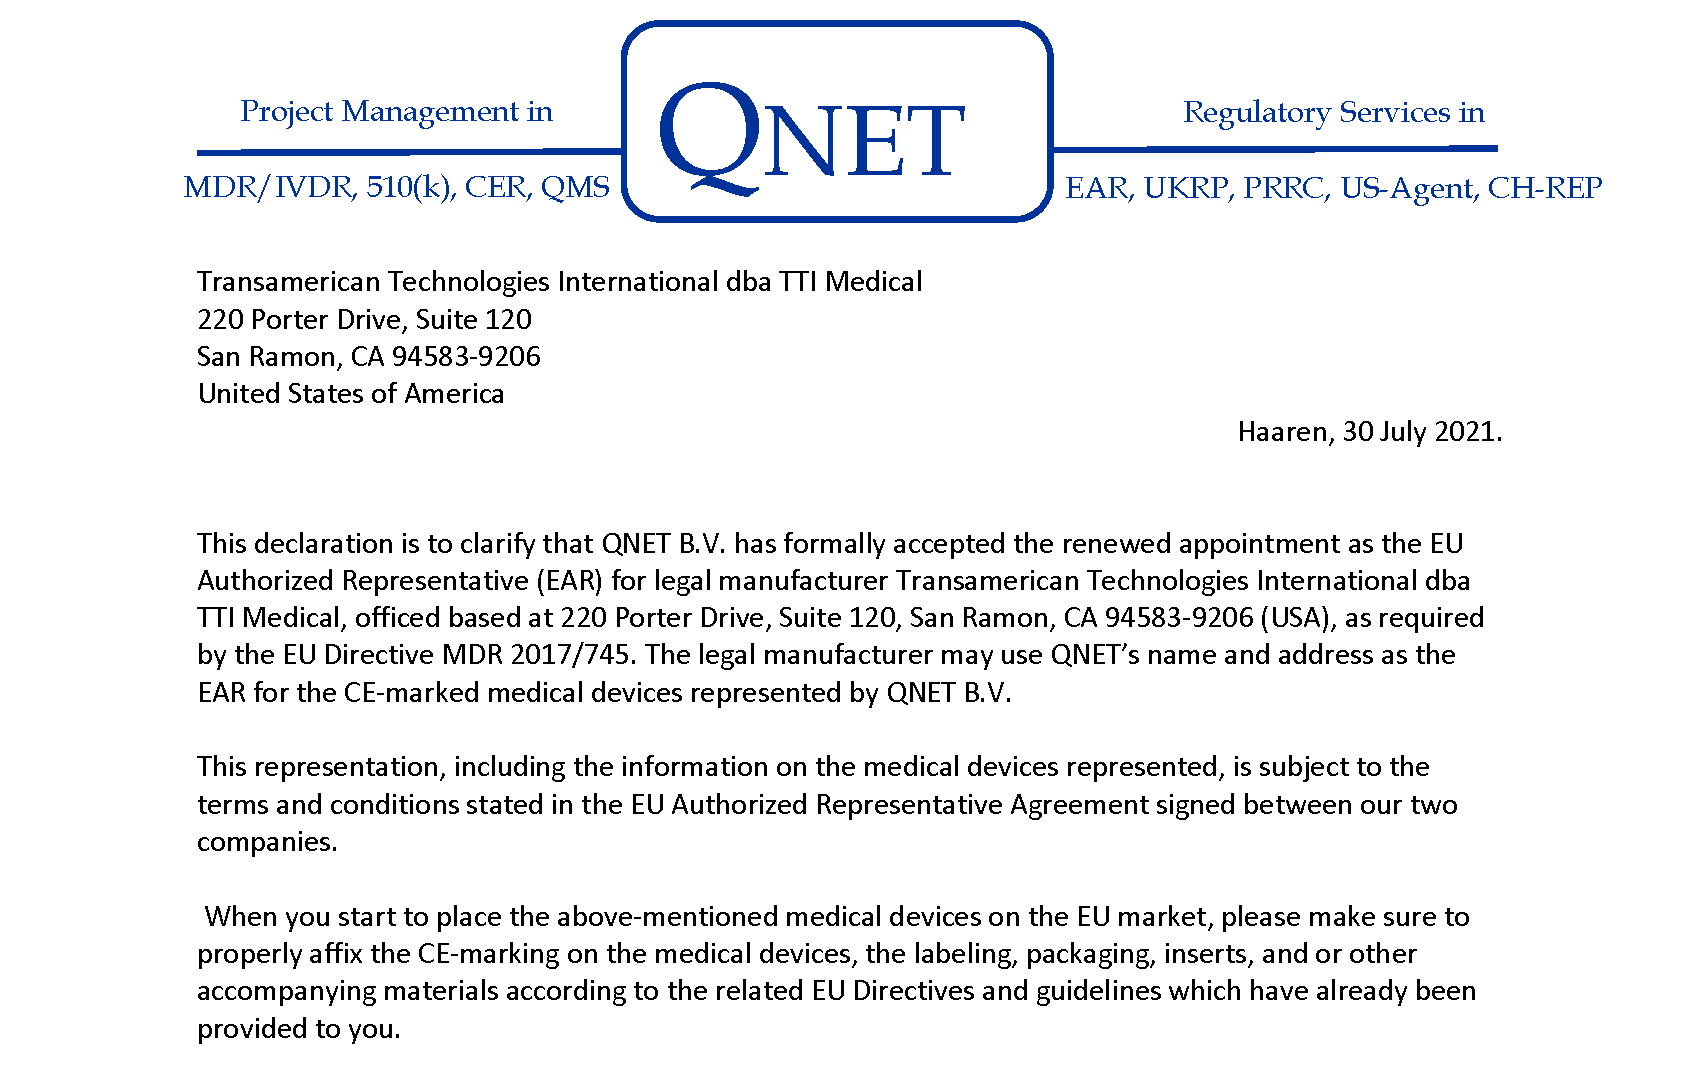 QNET MDR Auth Rep 2021